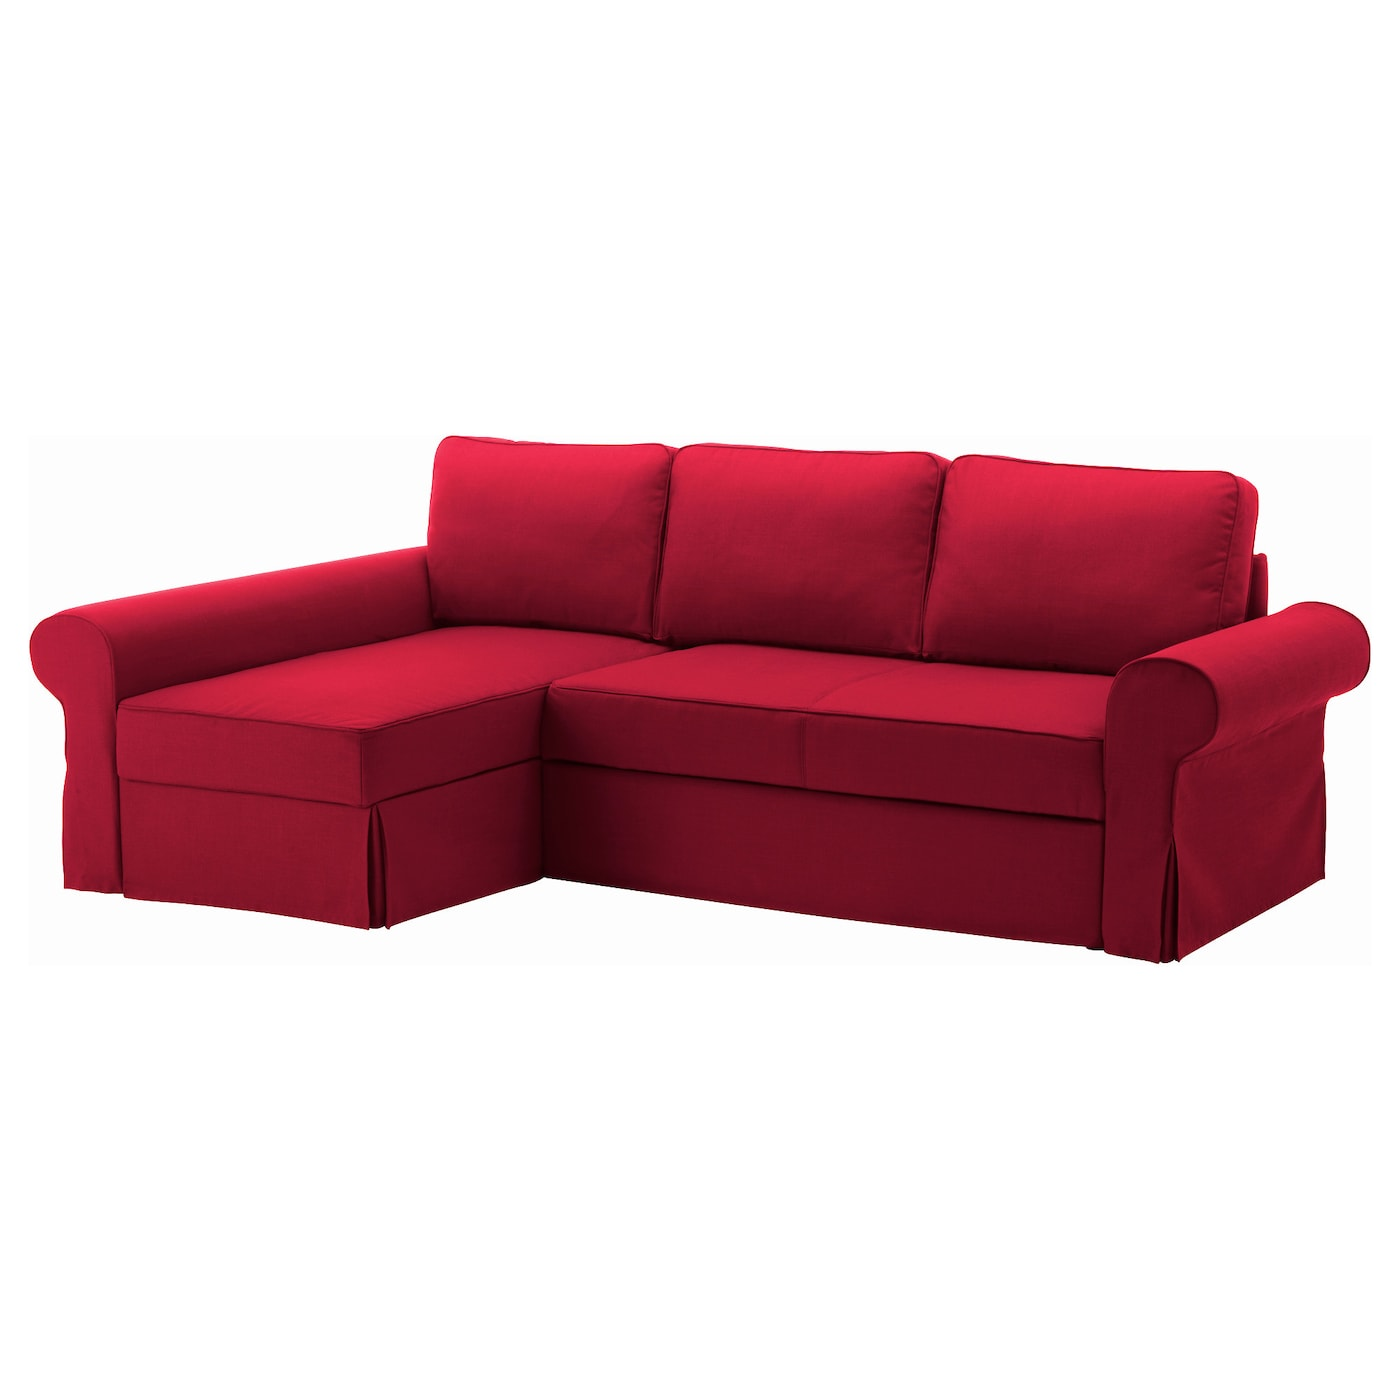 Backabro sofa bed with chaise longue nordvalla red ikea Bed divan